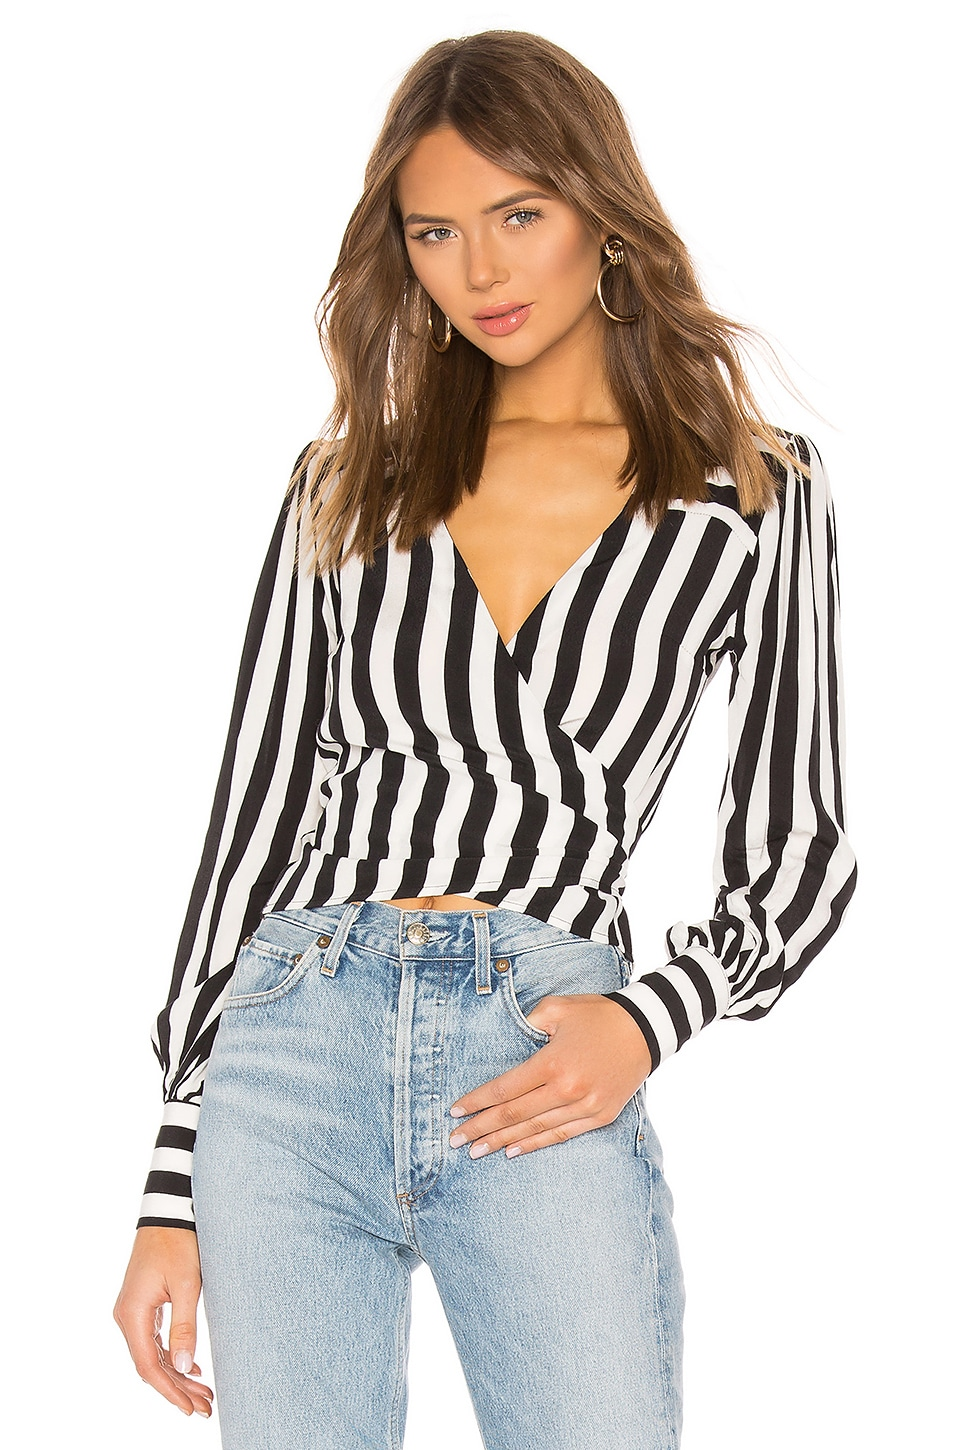 Lovers + Friends Carlyn Top in Black & White